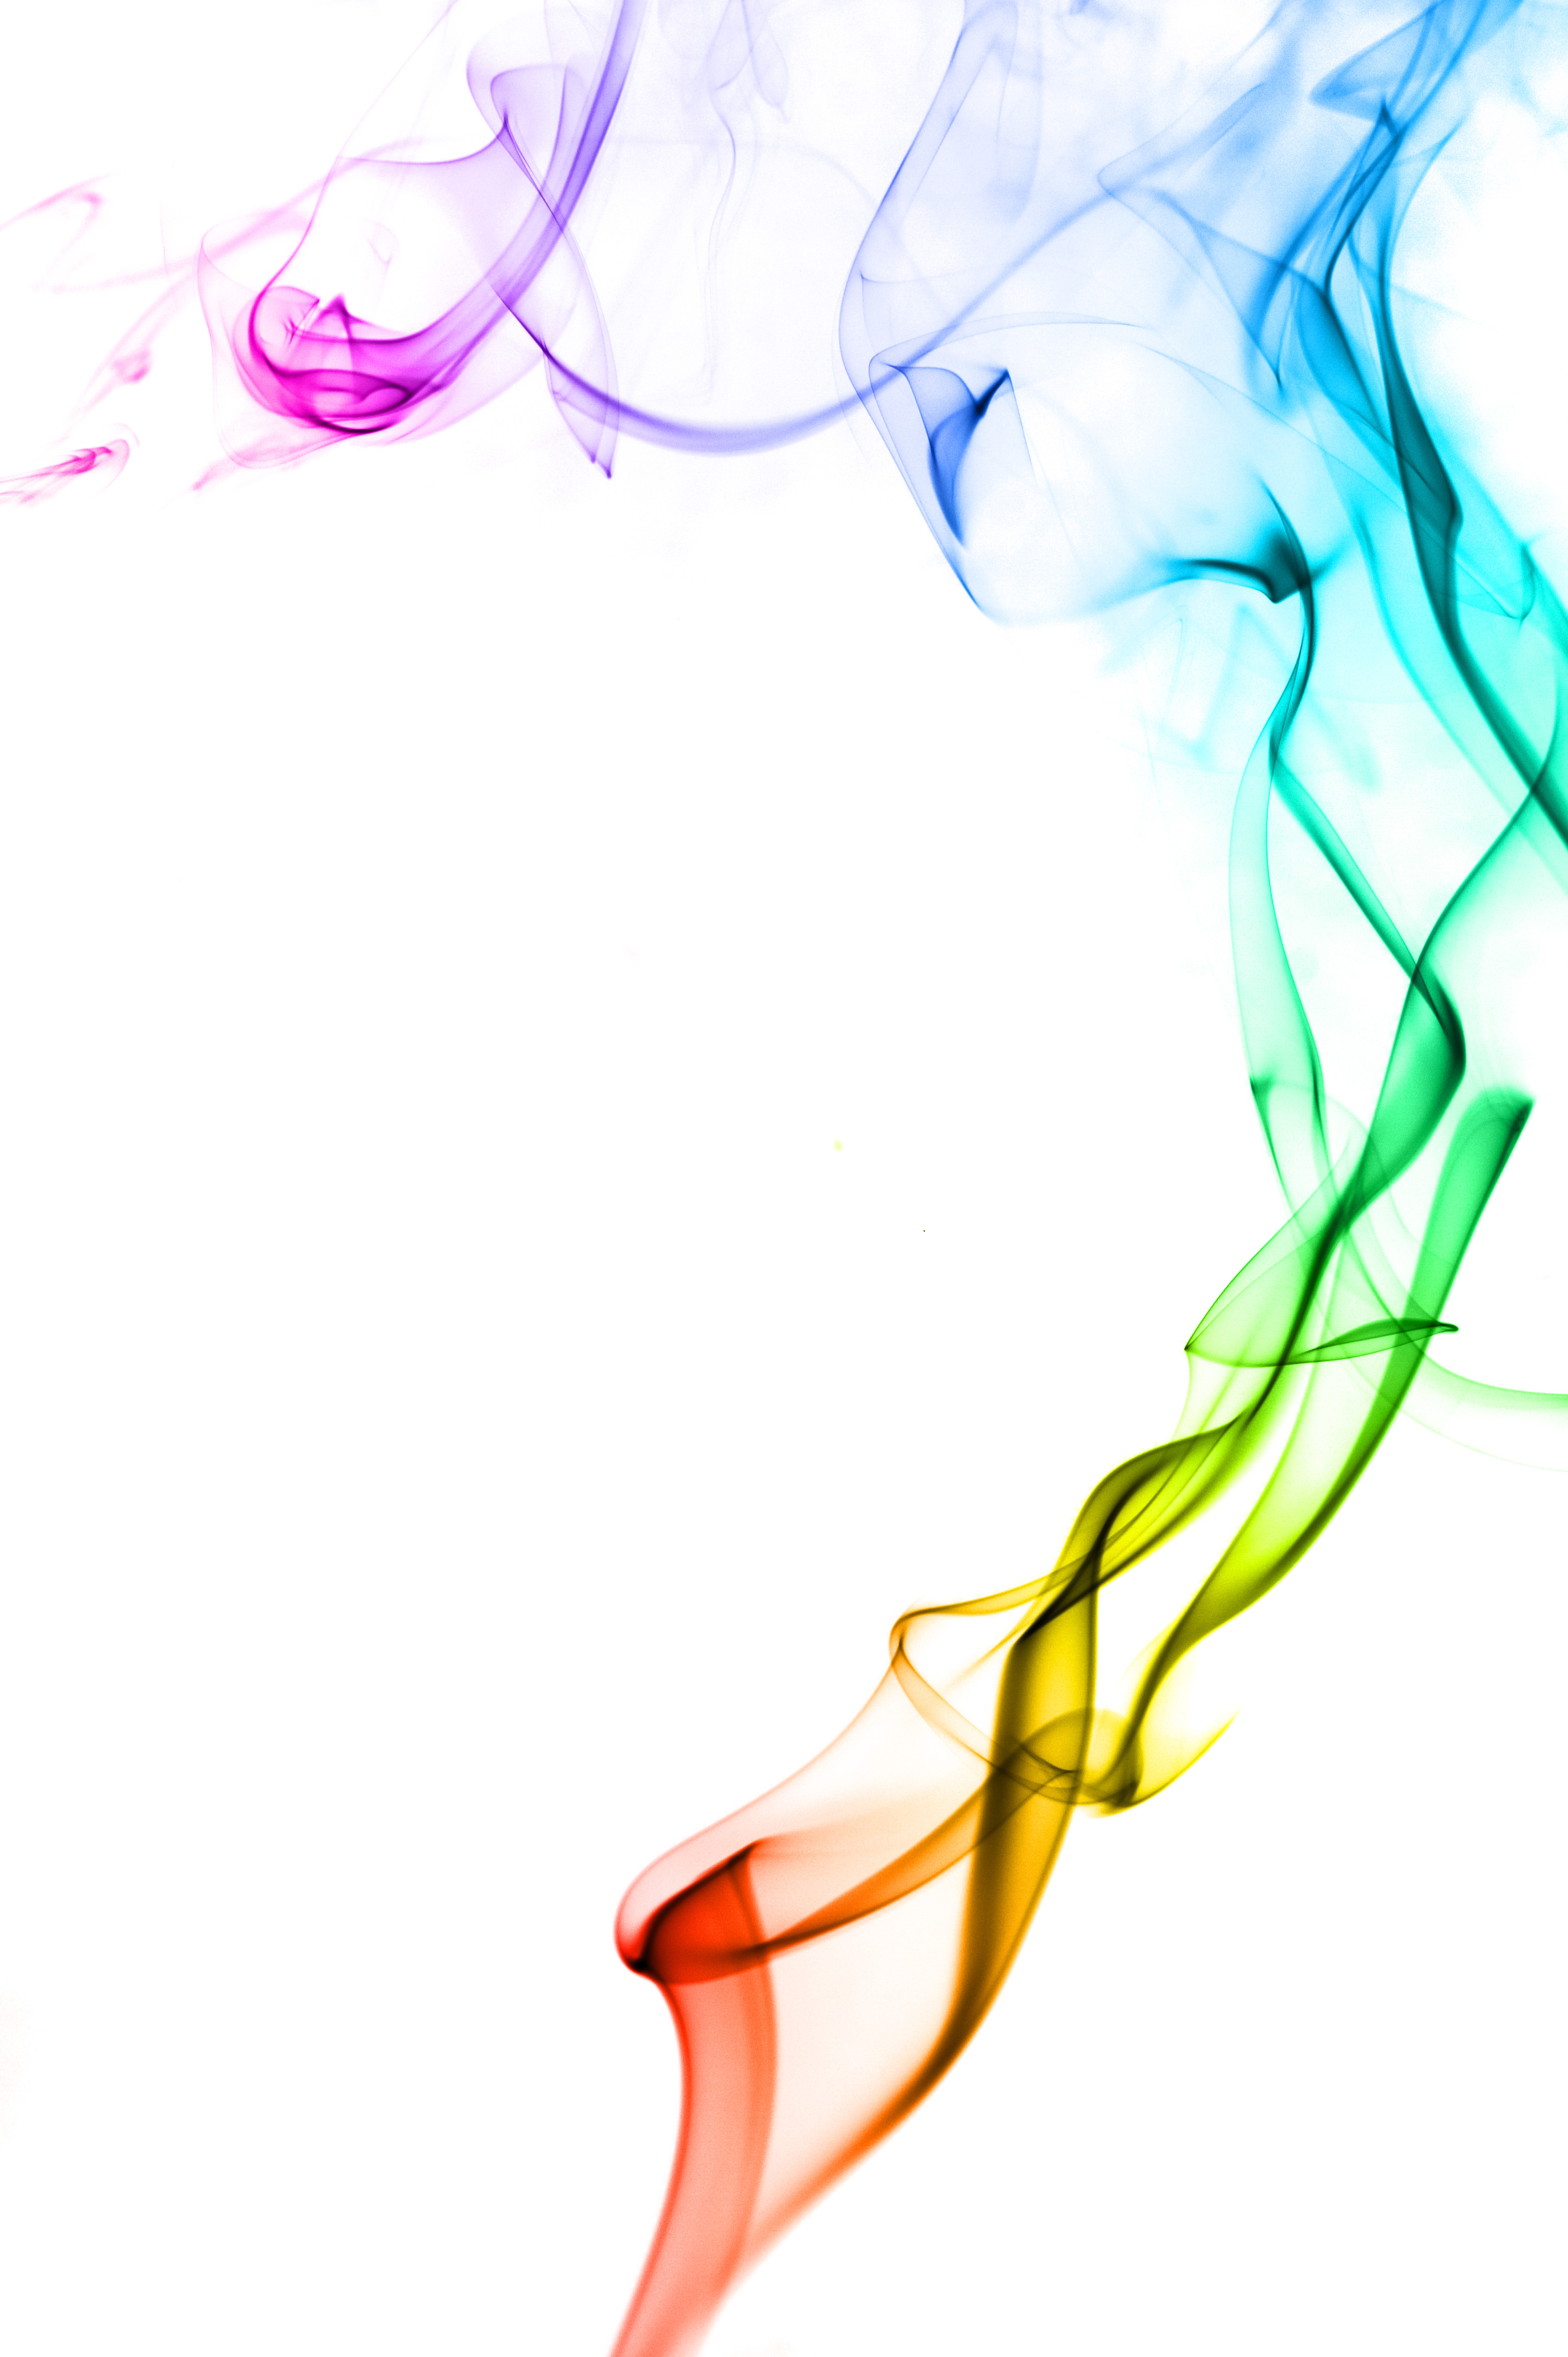 smoke spectrum | Free backgrounds and textures | Cr103.com